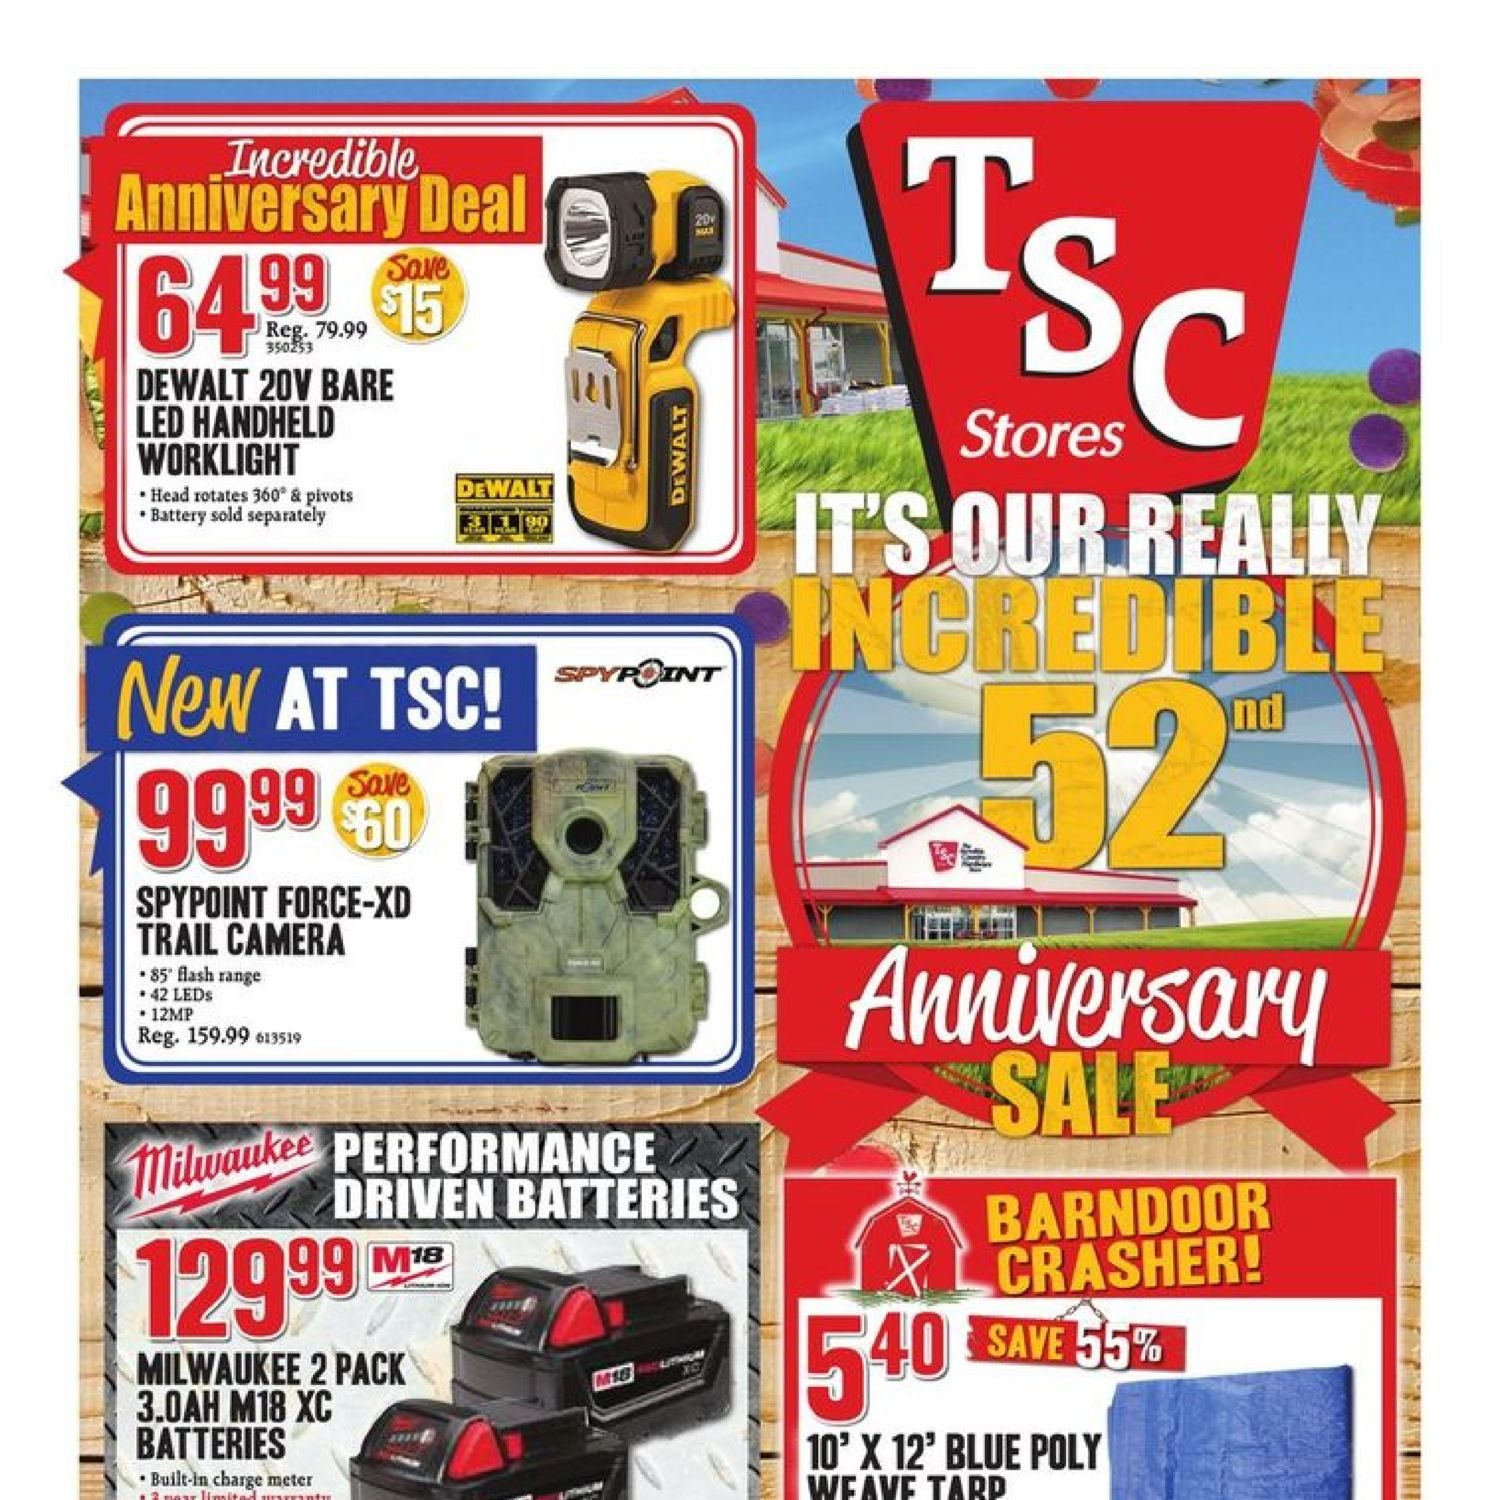 Tsc Stores Weekly Flyer Incredible 52nd Anniversary Sale Wiring For Front Component Speakersimg13661jpg Sep 21 27